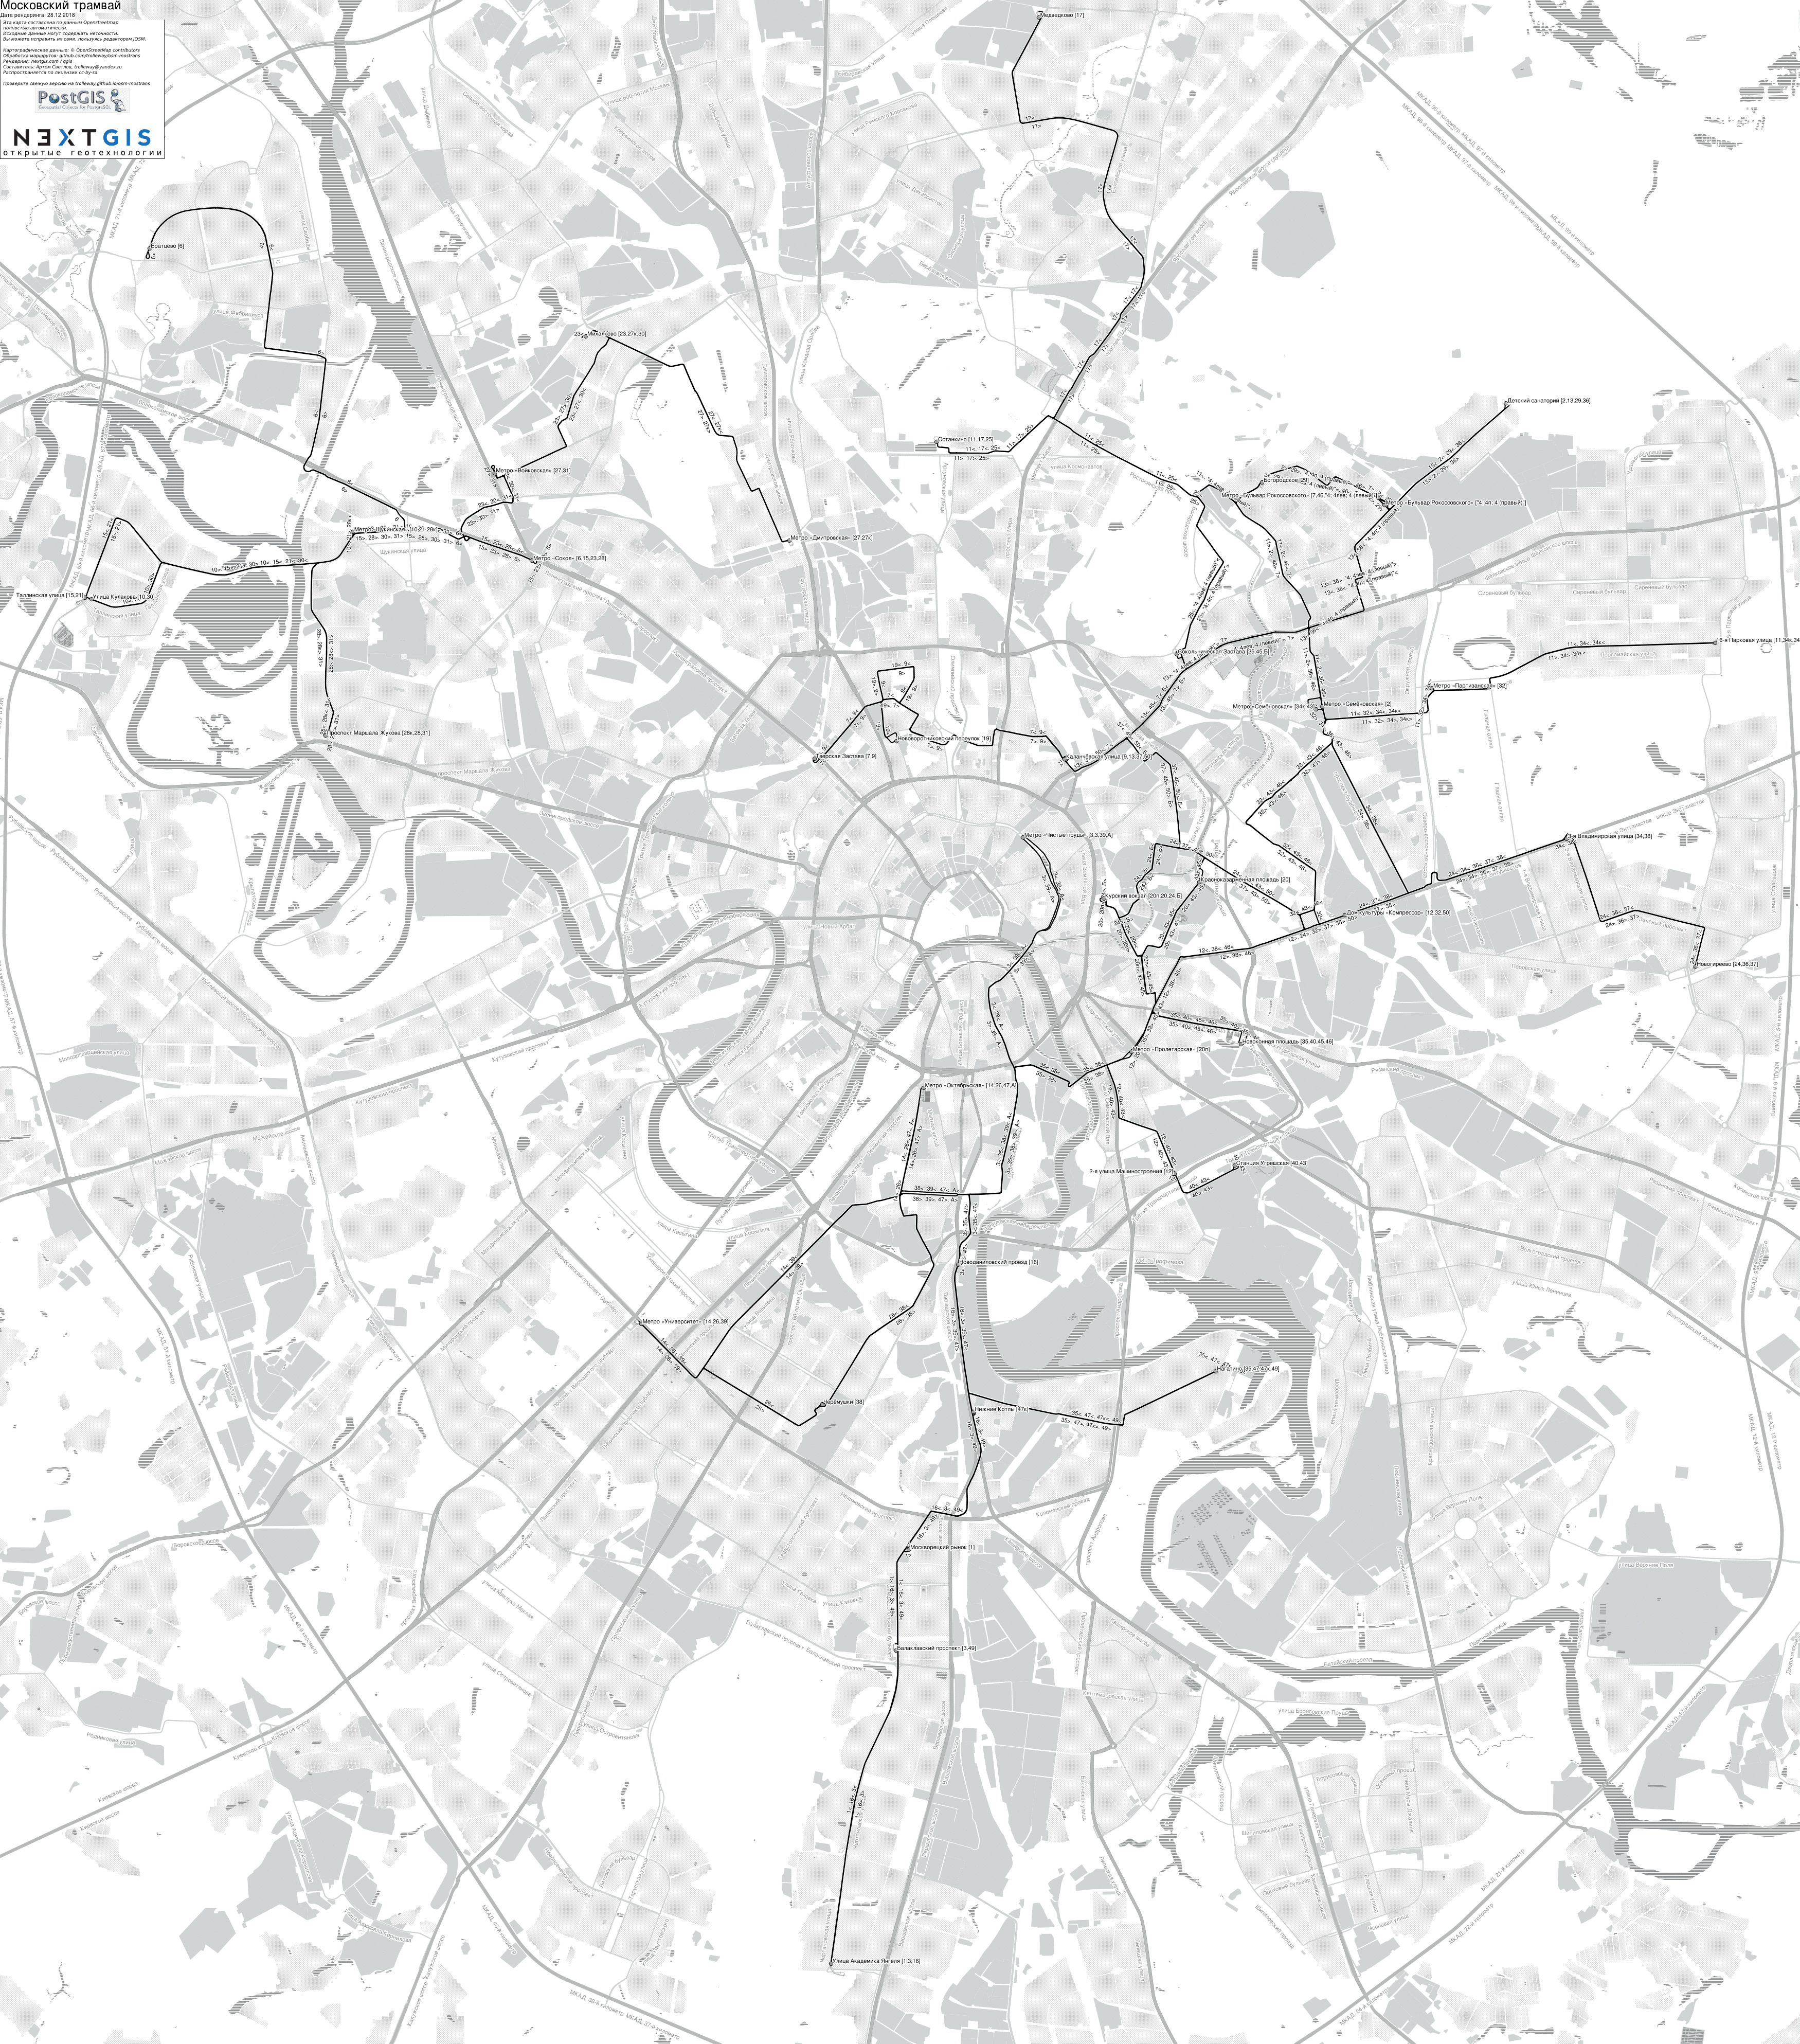 File:Moscow tram map Osm-mostrans png - Wikipedia